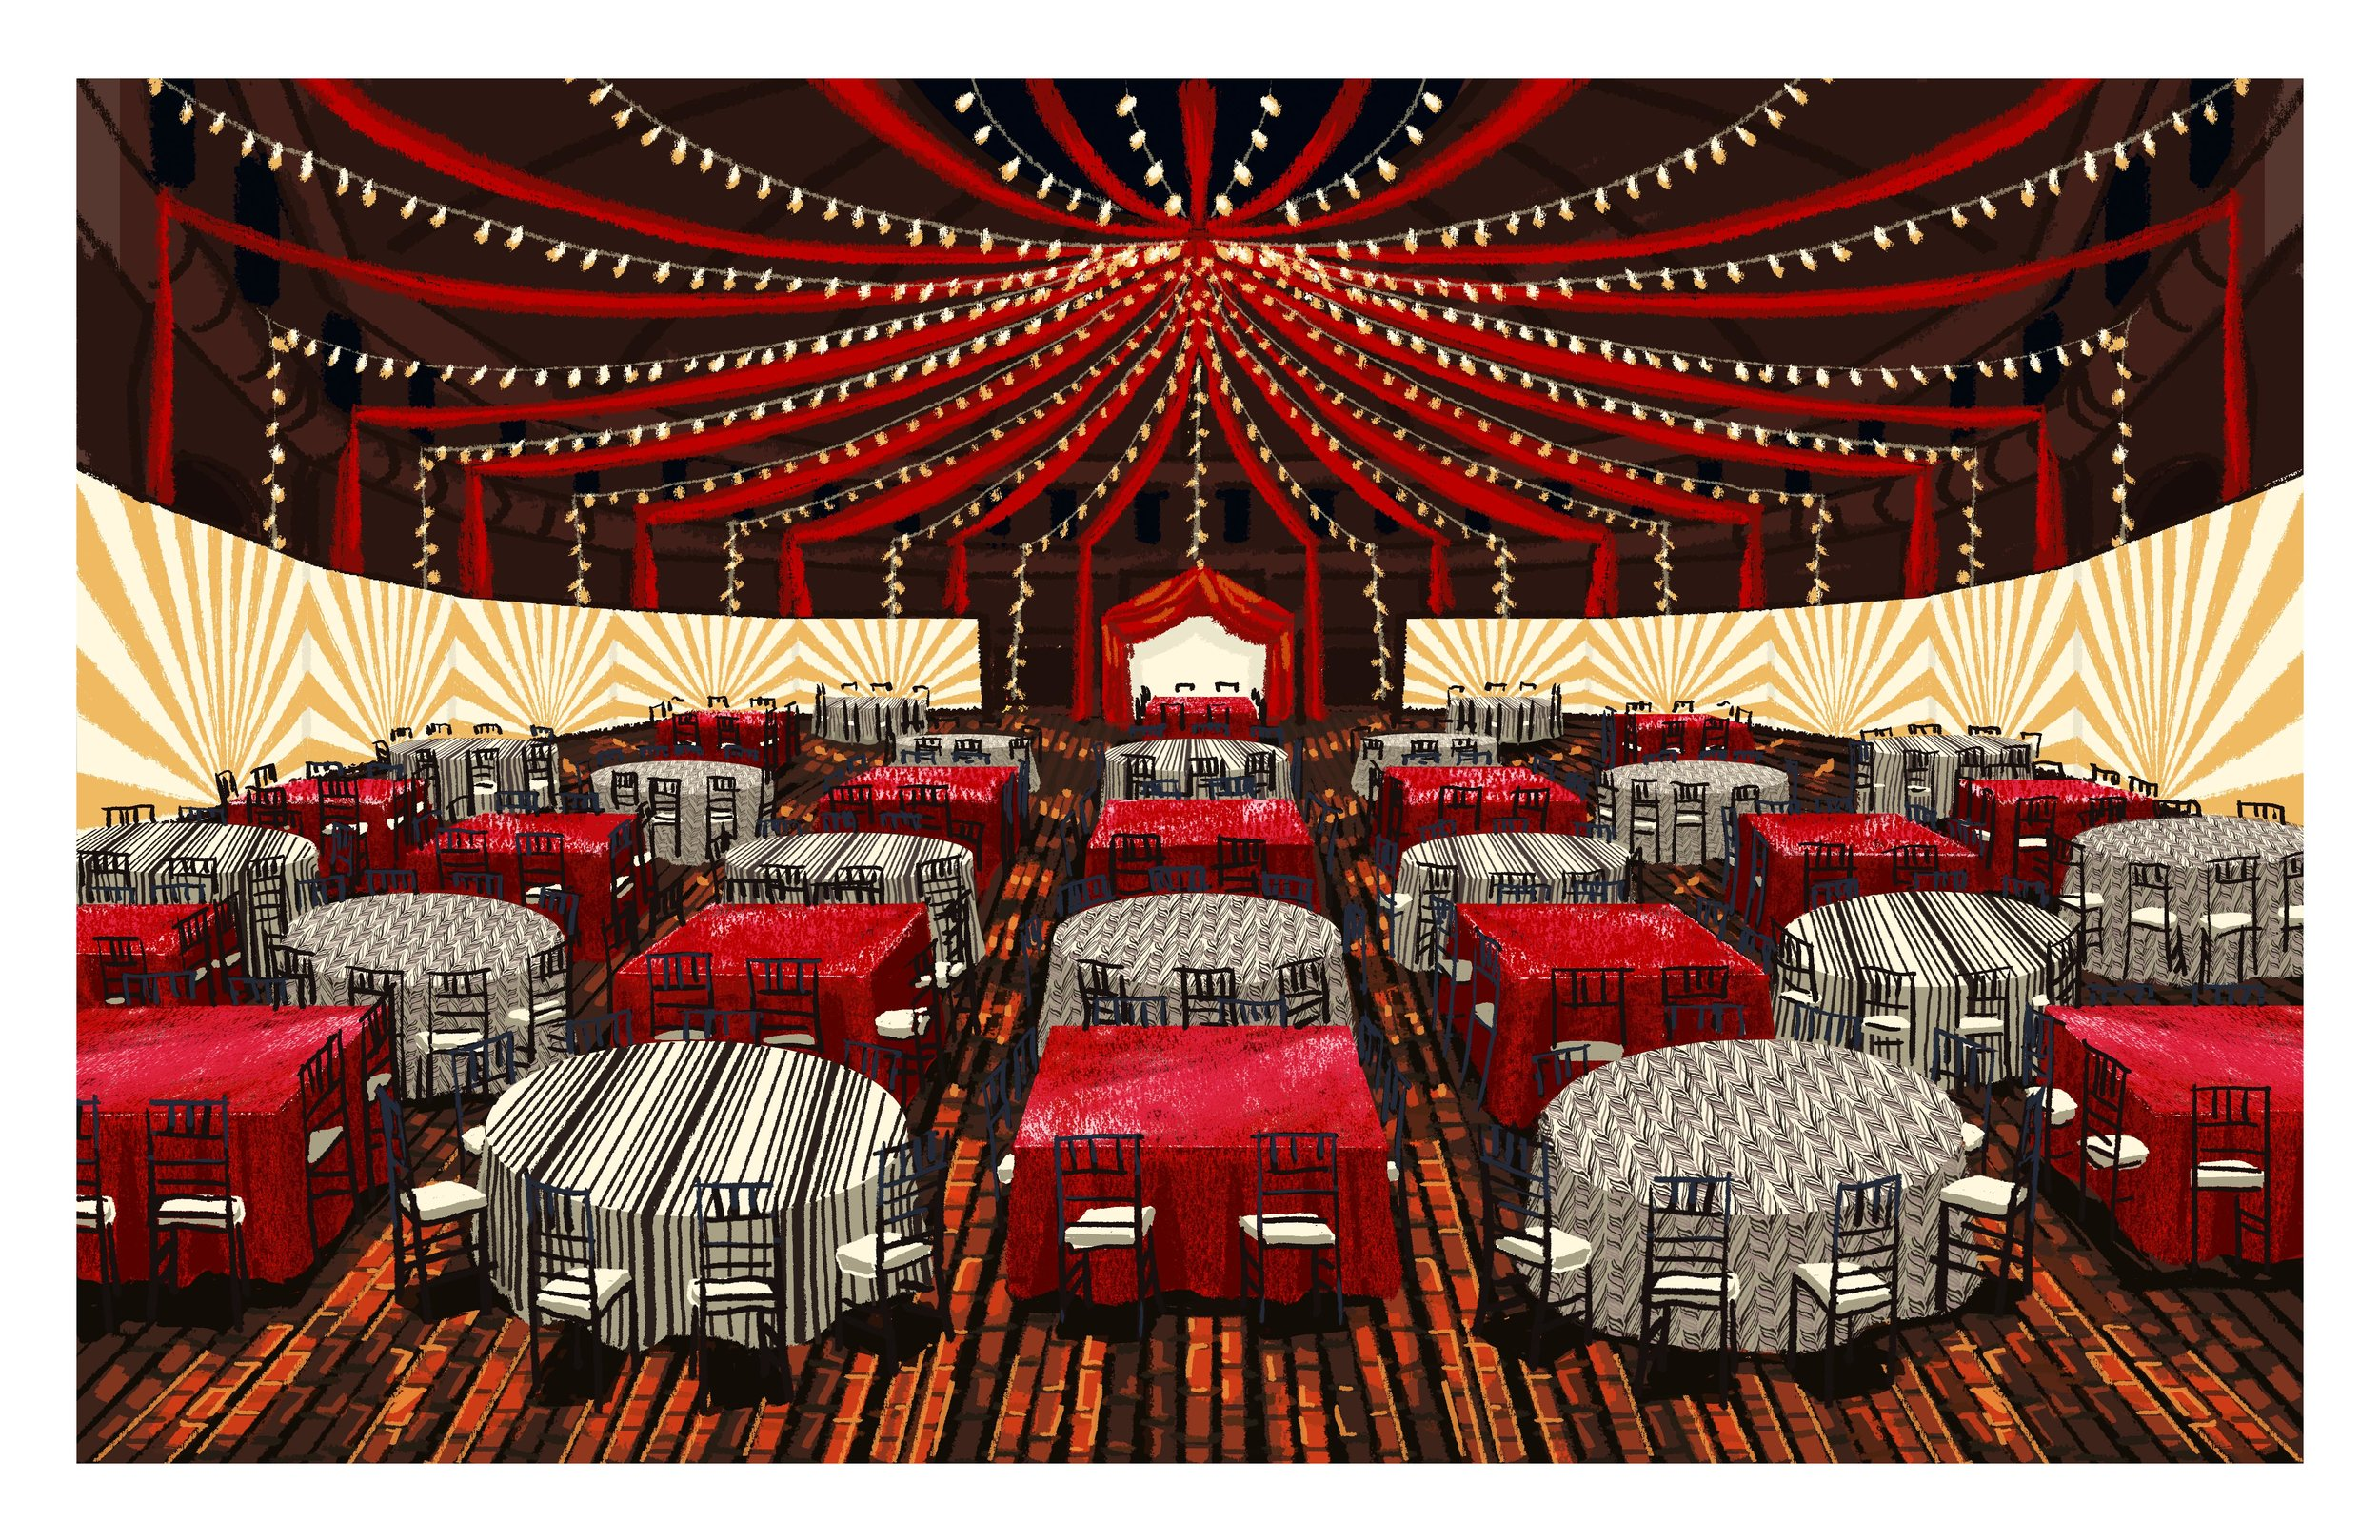 Abigail McCoy_Circus at the Cyclorama Illo_300 dpi.jpg